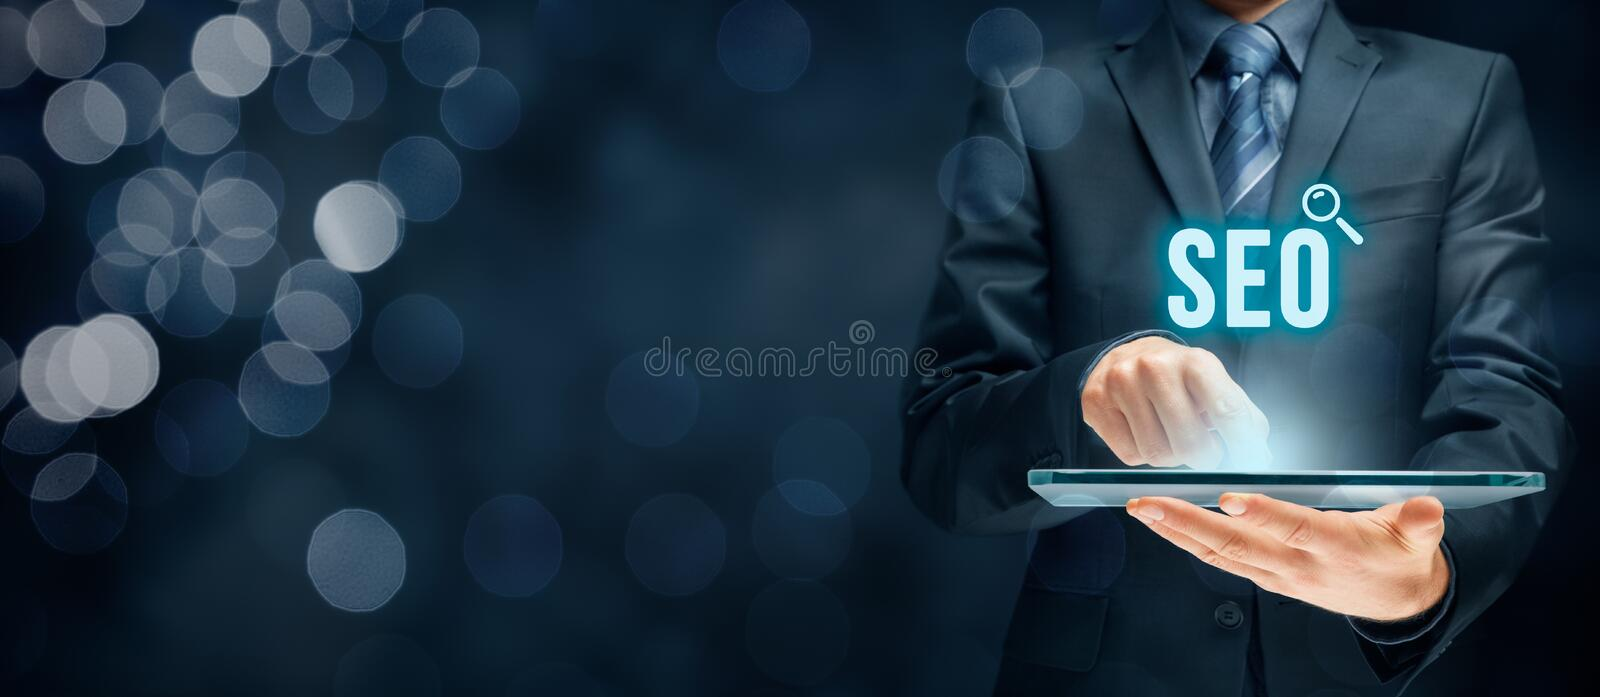 SEO search engine optimization stock images